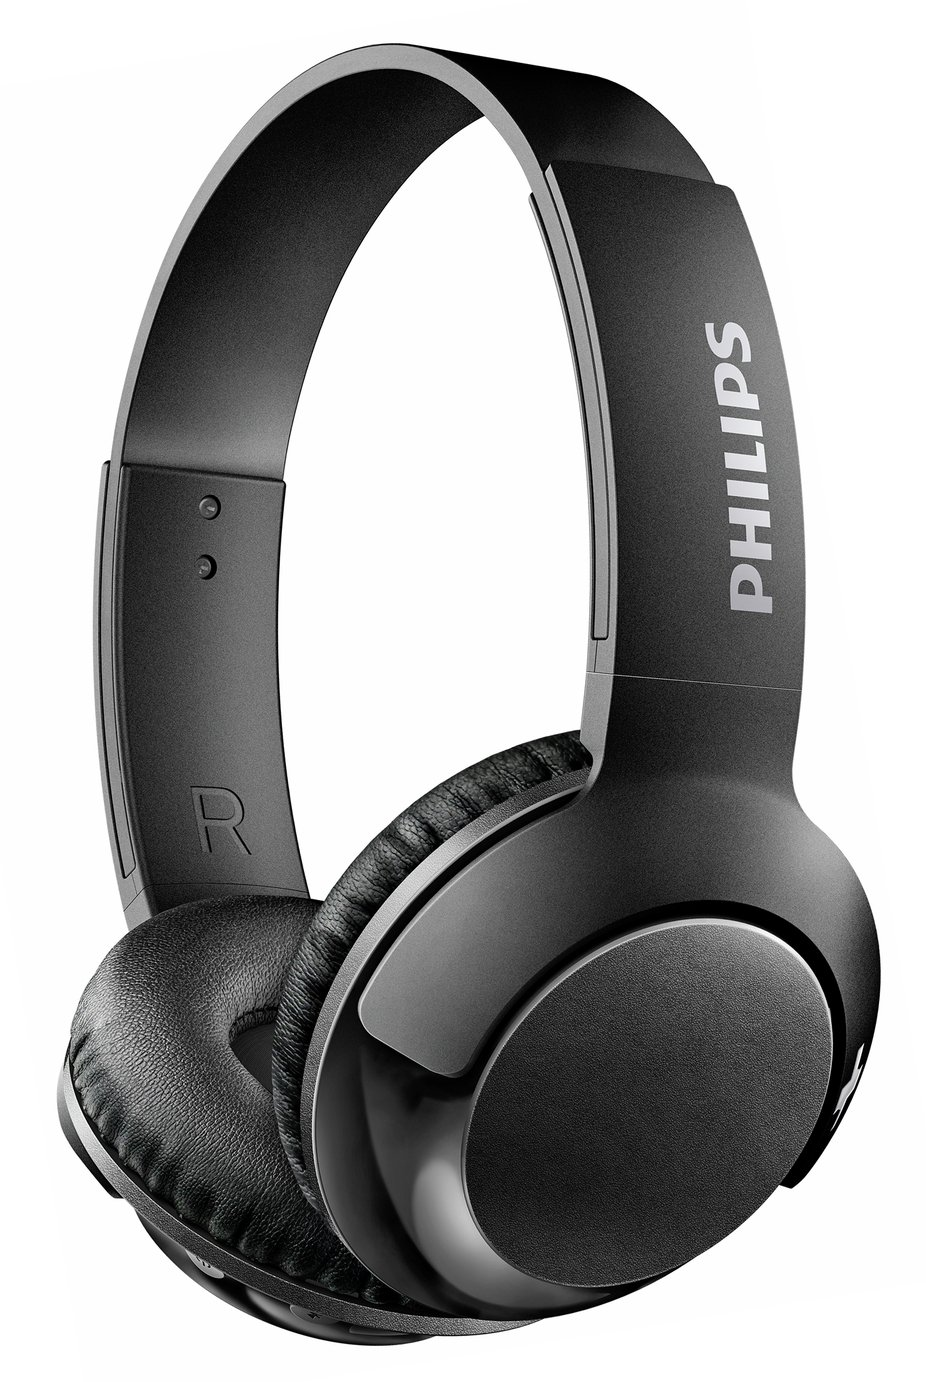 Philips shb3165 wireless headphones not connecting